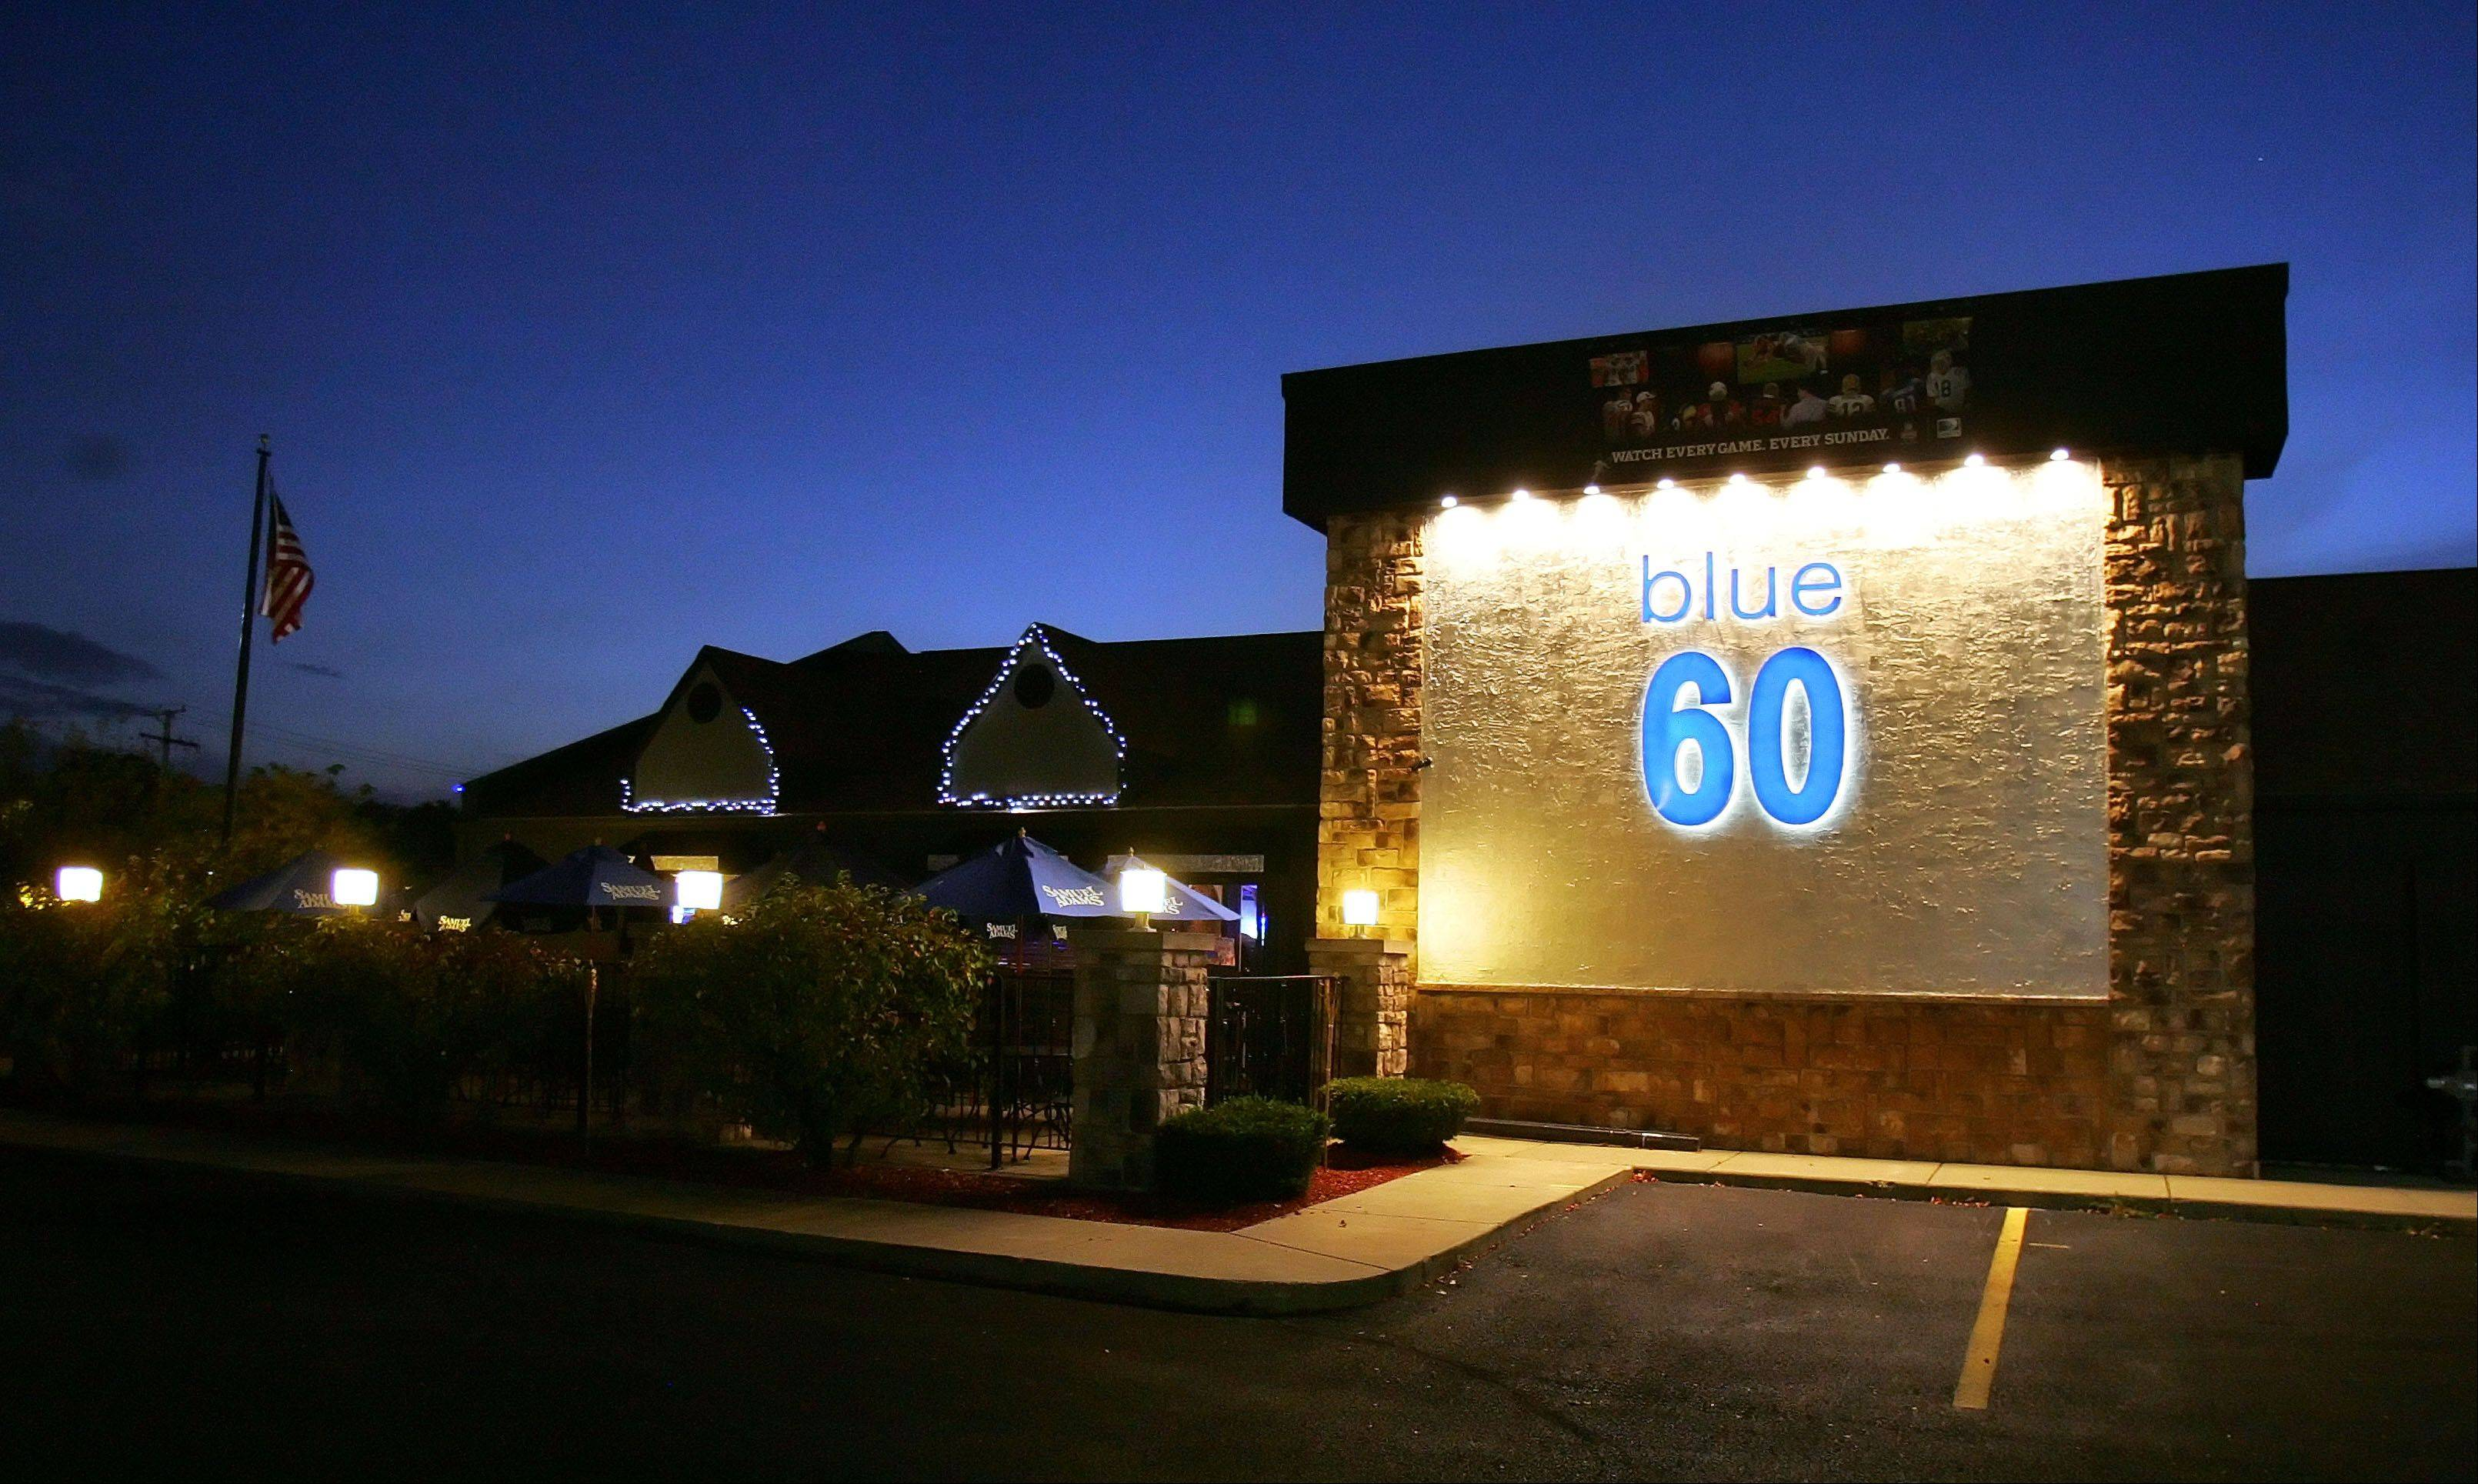 The Blue 60 sports bar in Mundelein will lose its liquor license in 60 days if the owner doesn't sell the place.